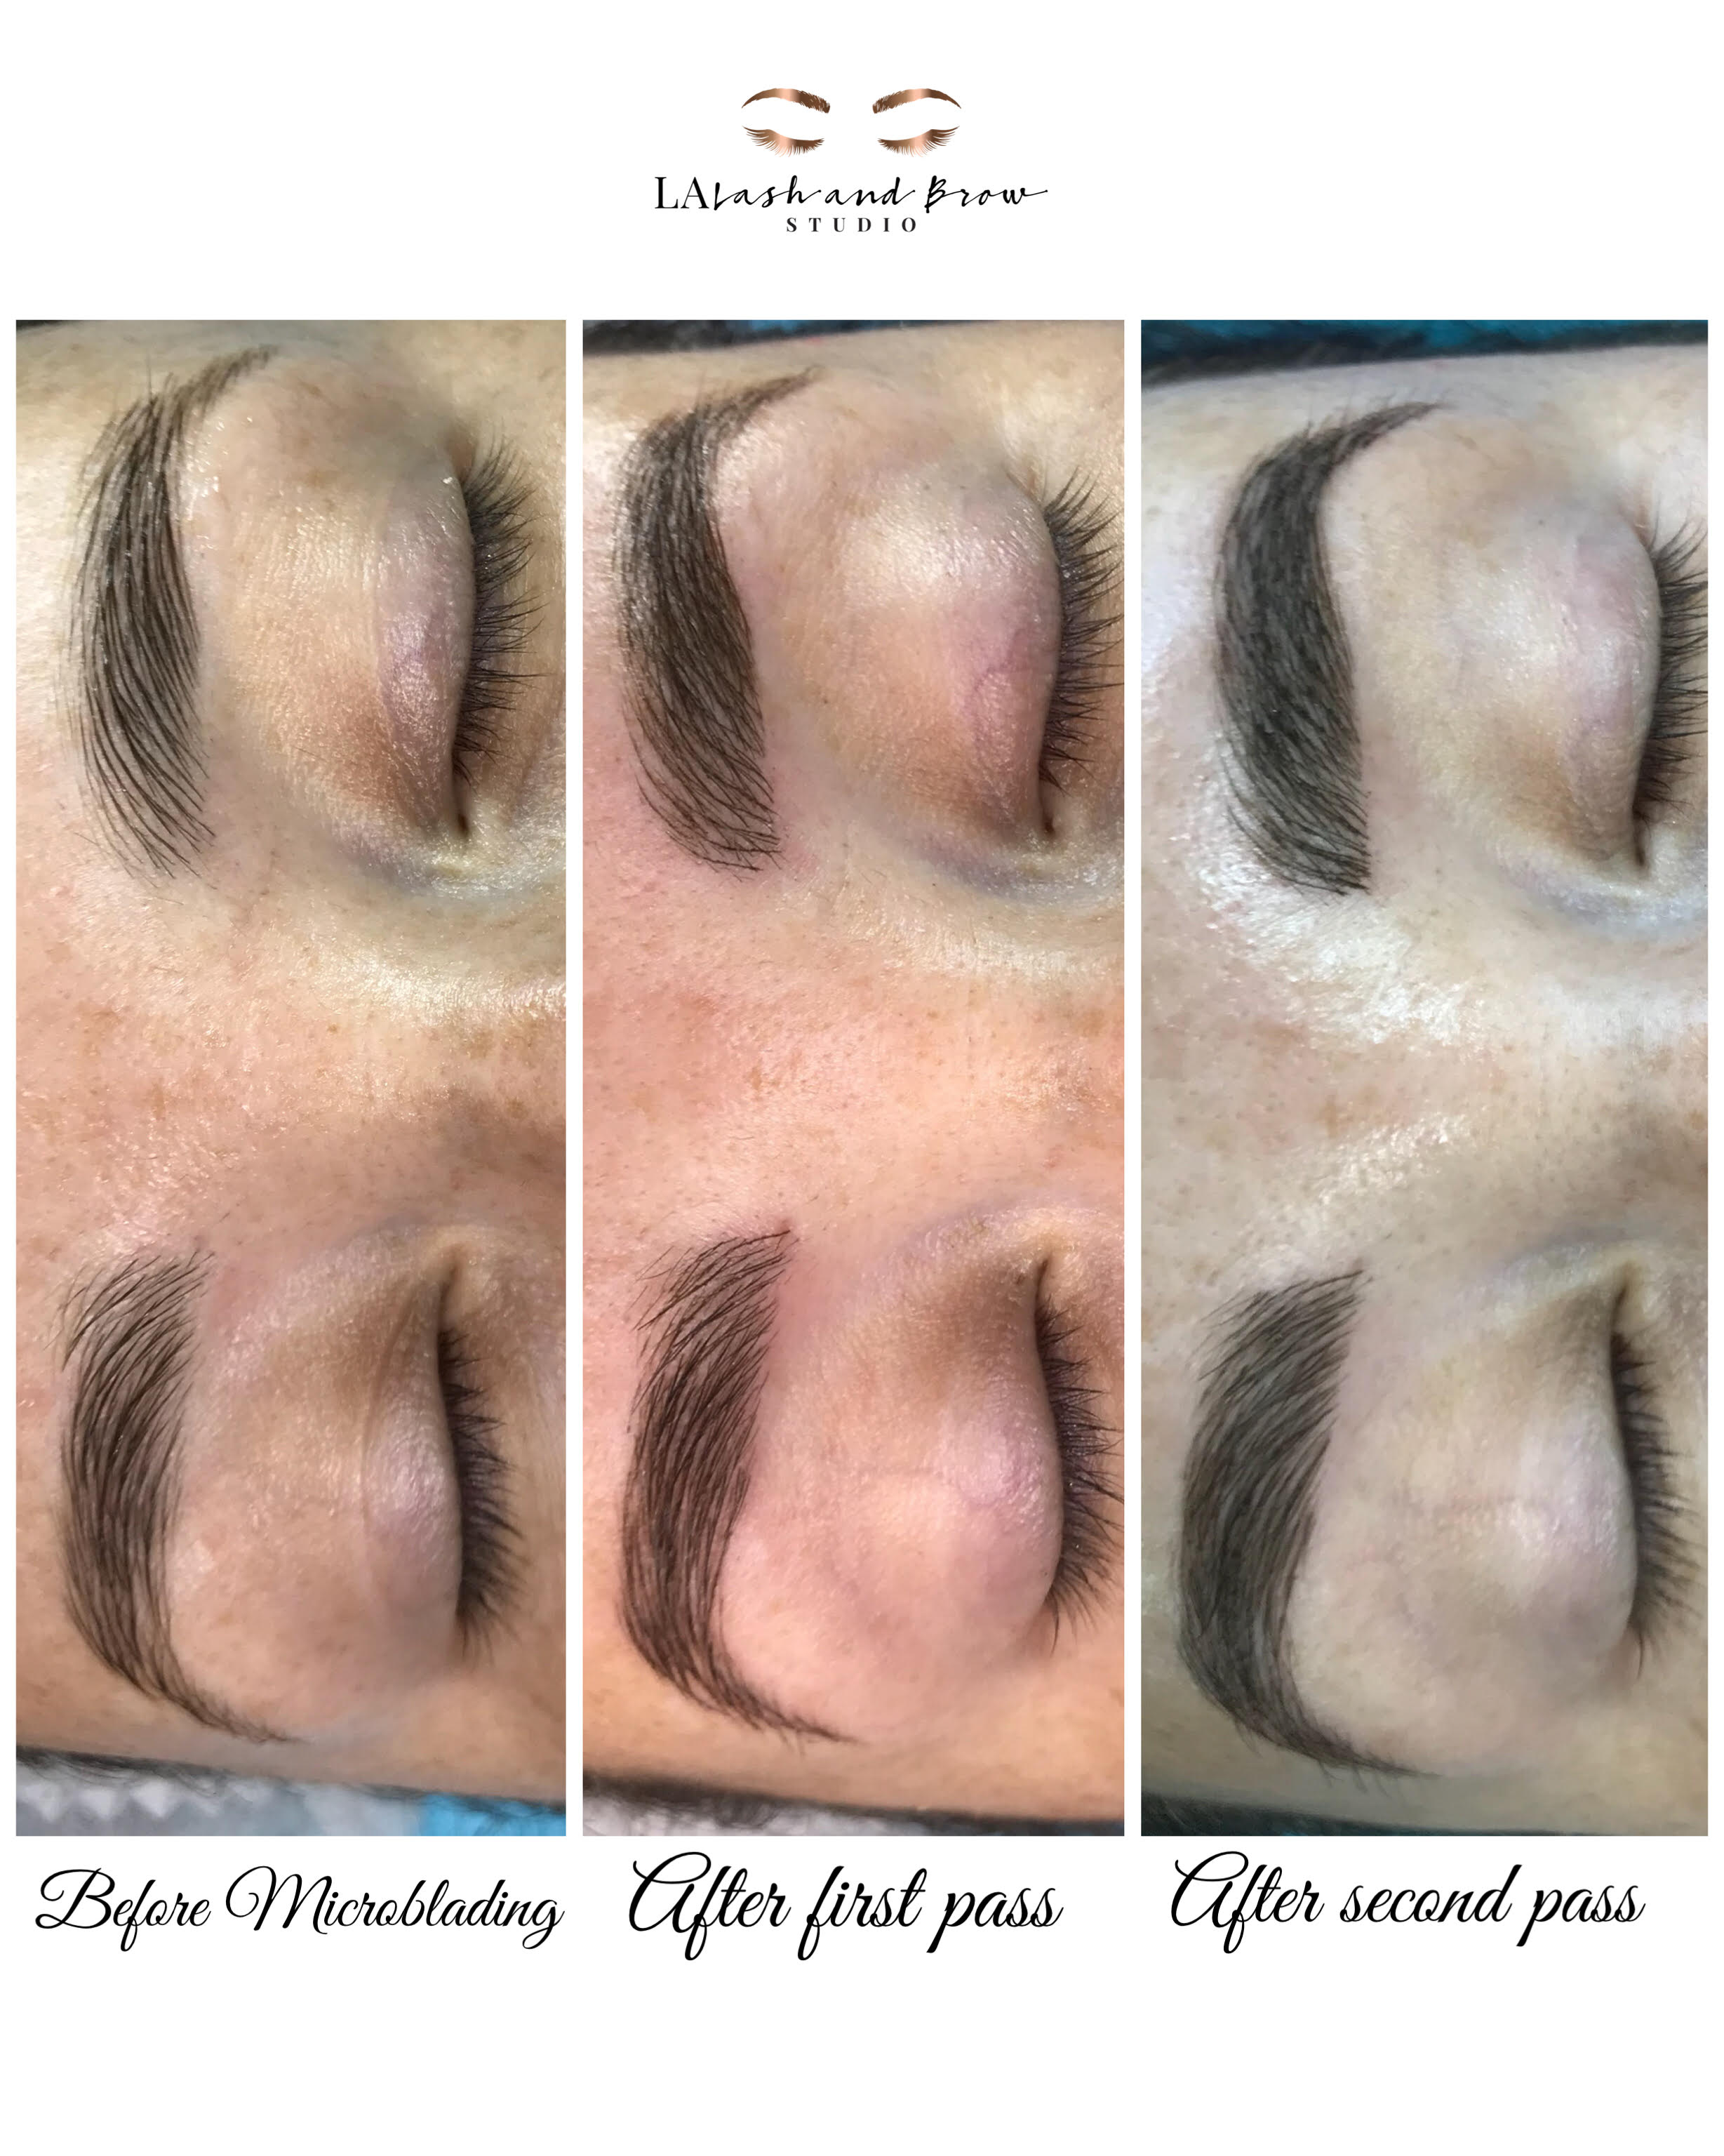 Microblading | LA Lash and Brow Studio | Book today 727-808